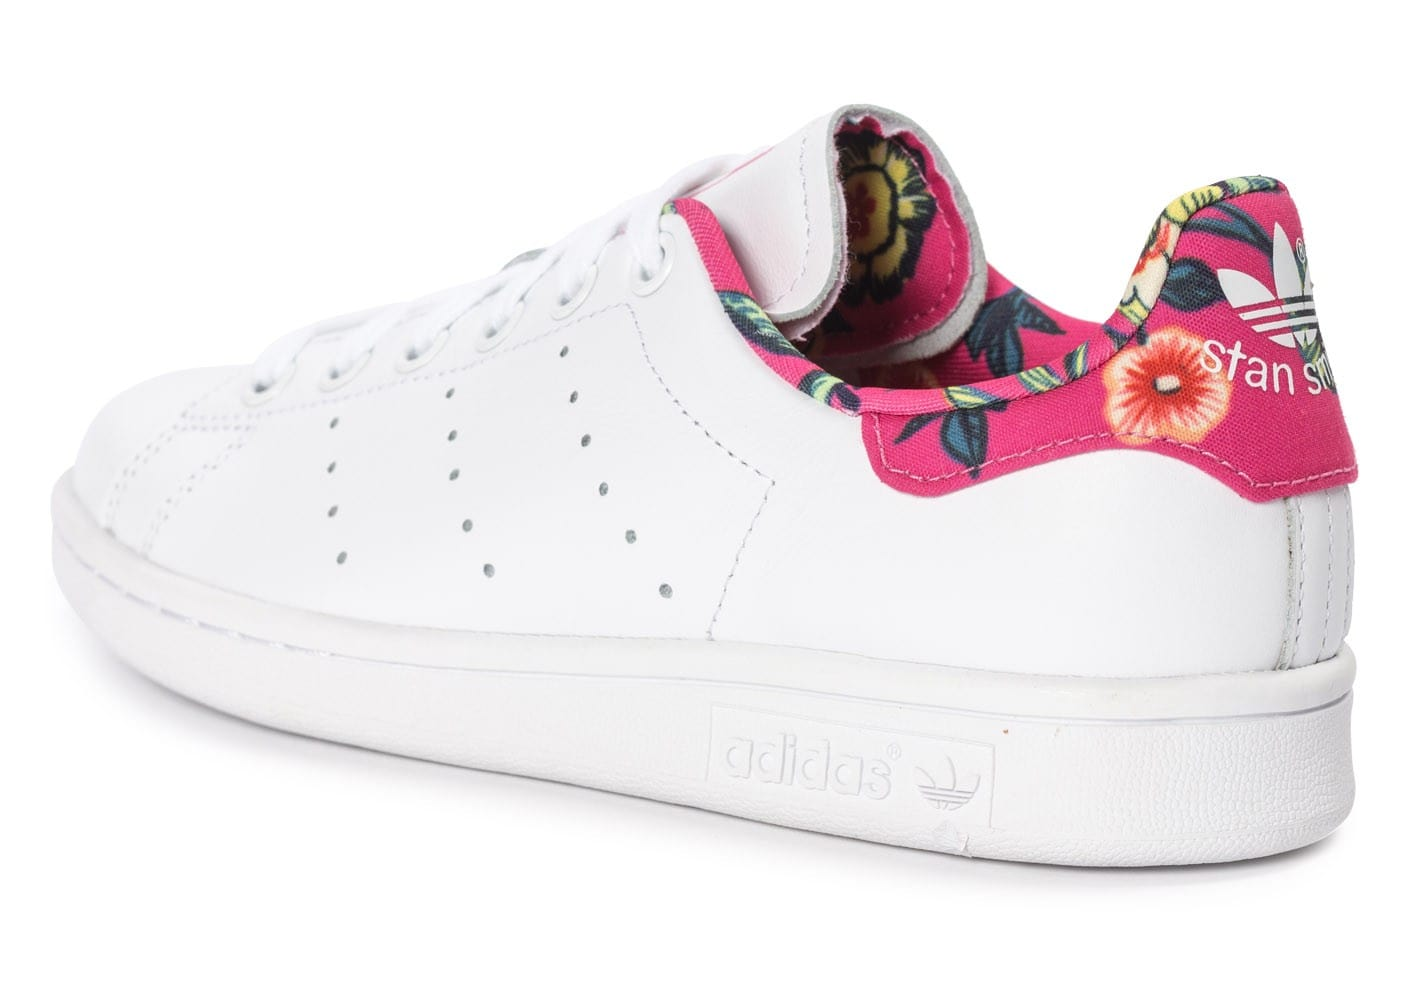 adidas Stan Smith Floral blanche Chaussures adidas Chausport